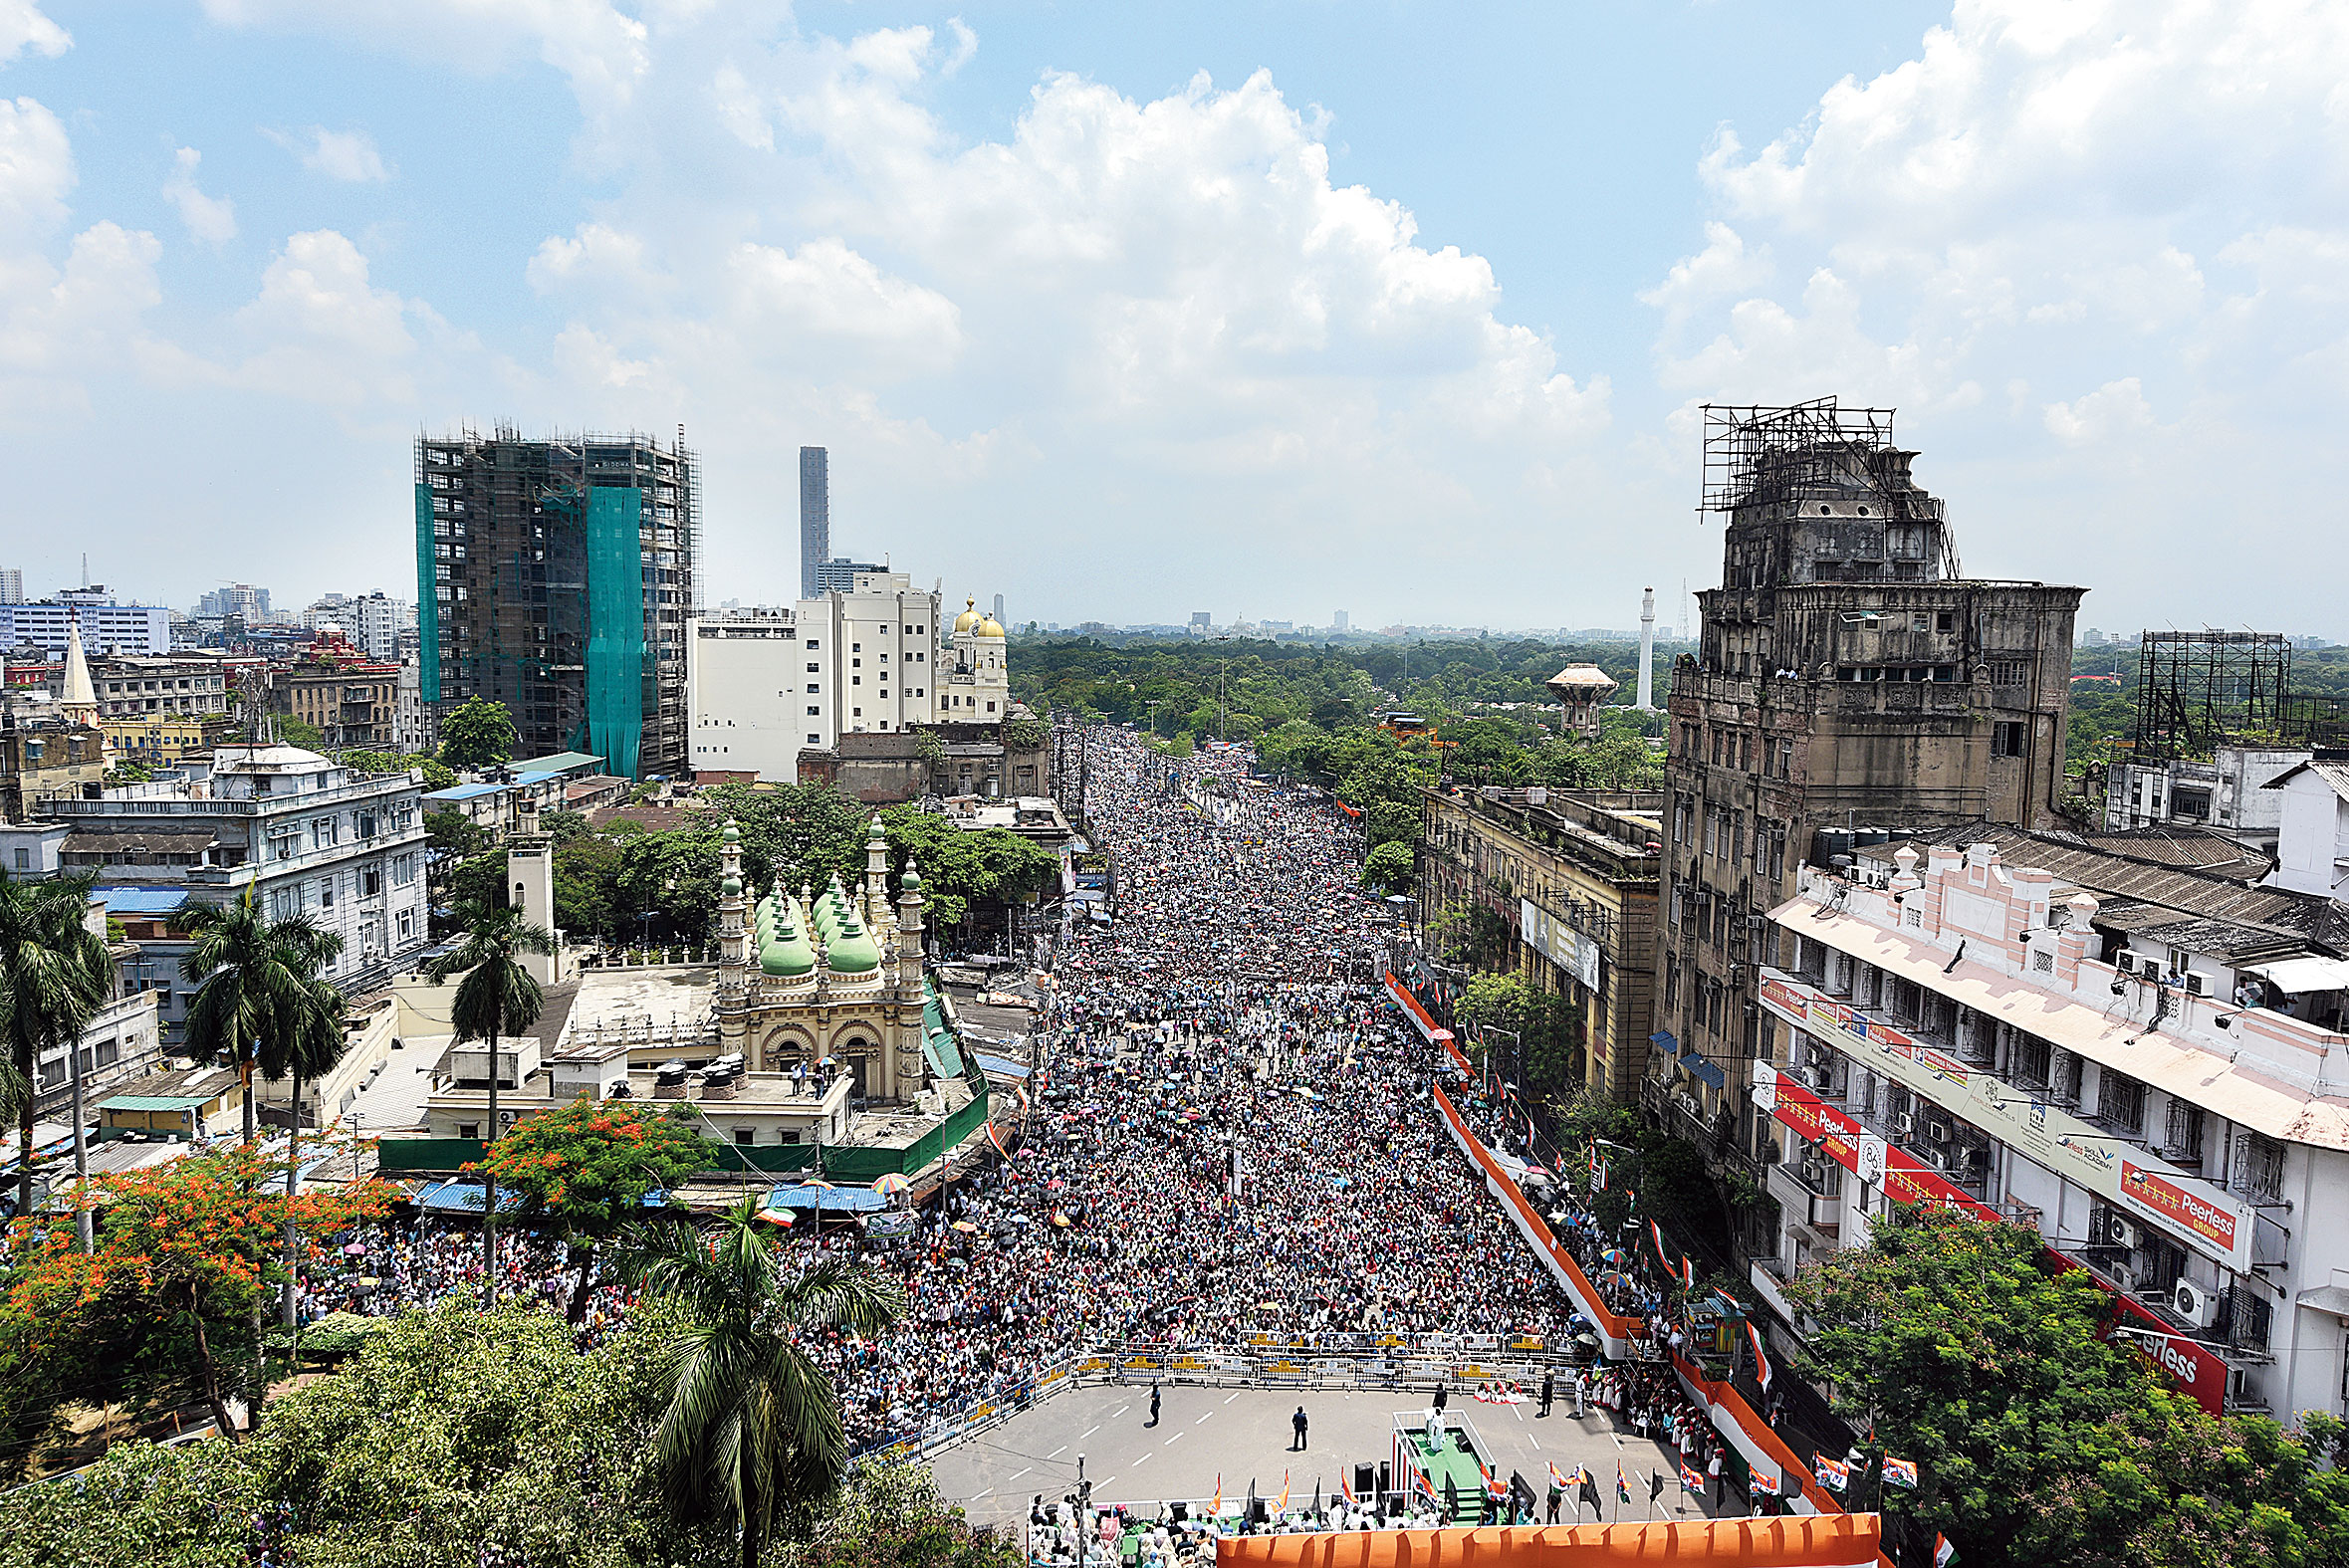 A panoramic view of the dais and the crowd at the Trinamul rally in Calcutta on Sunday.